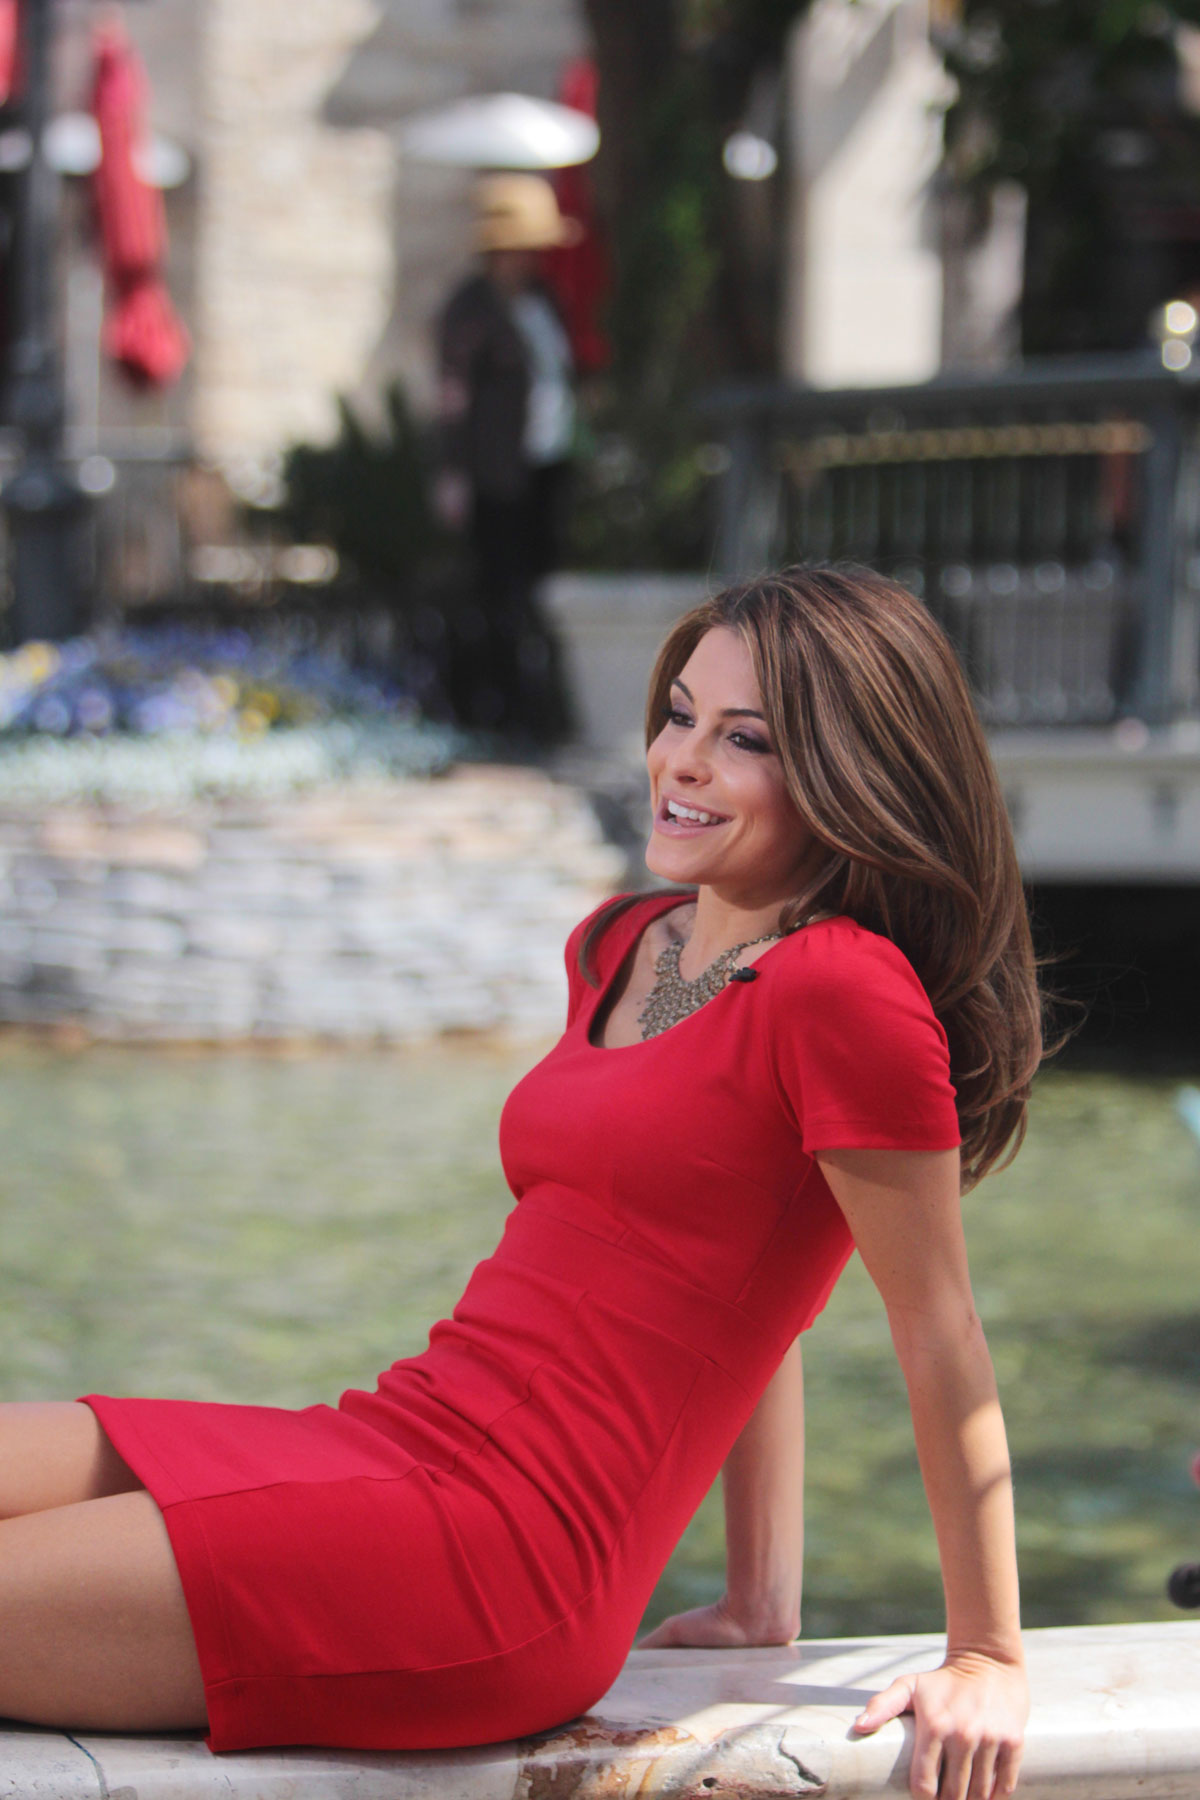 Haruno Sexy Model Maria Menounos Photo Shoot In Red Dress